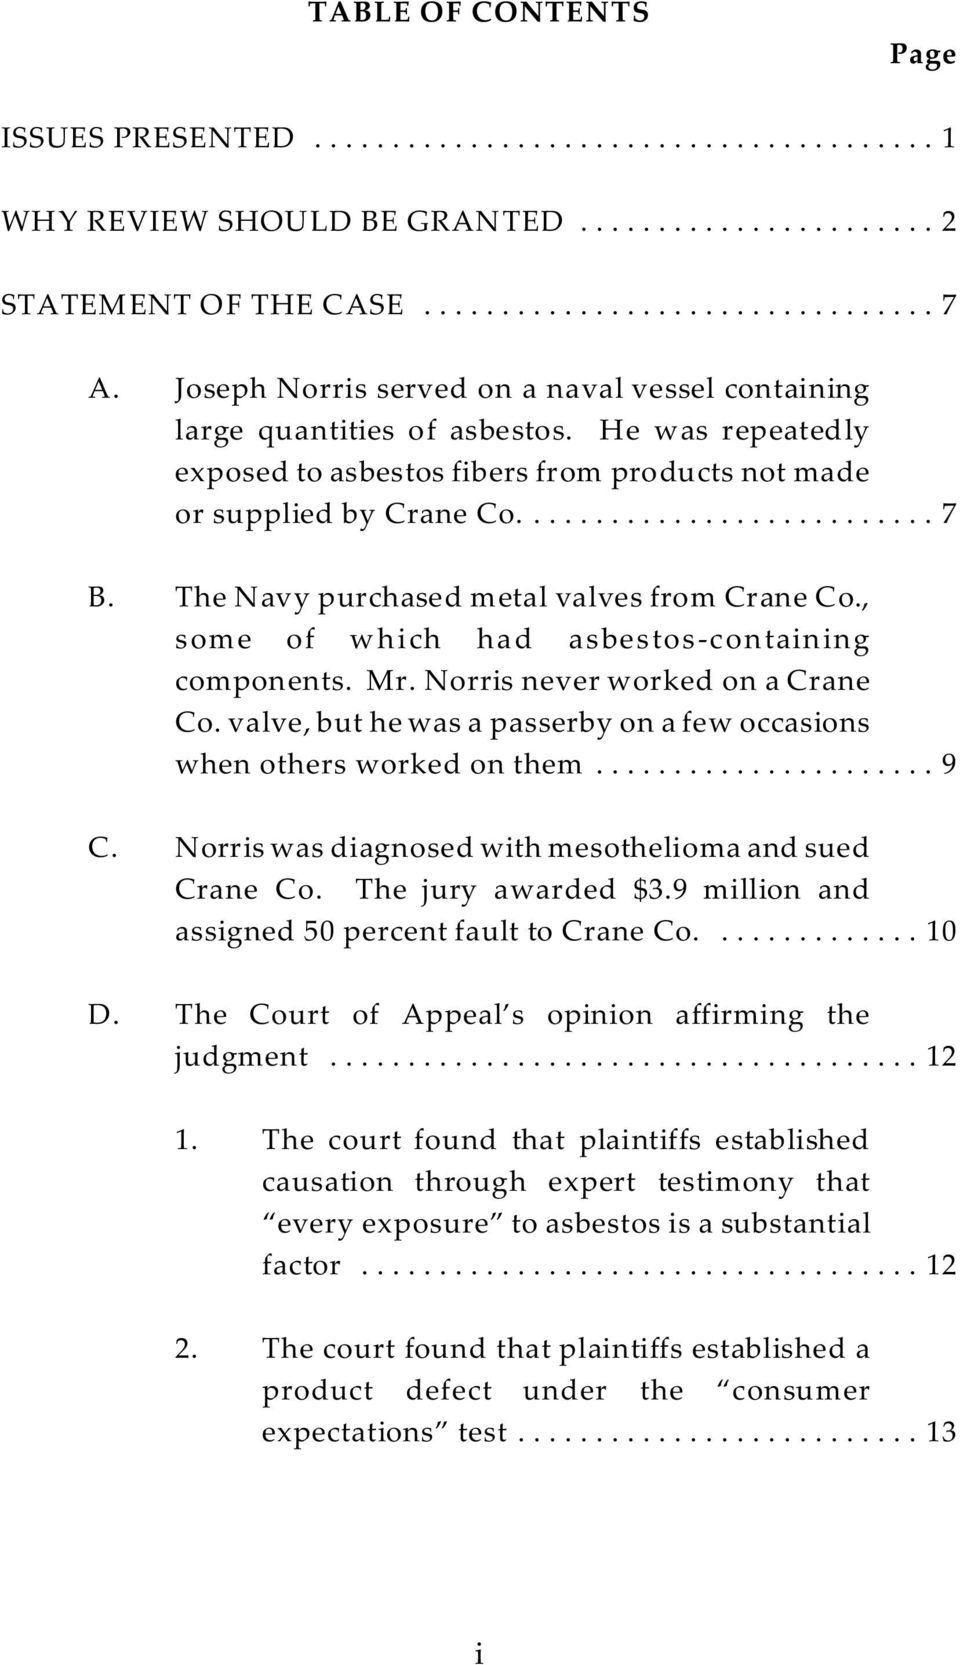 Mr. Norris never worked on a Crane Co. valve, but he was a passerby on a few occasions when others worked on them...9 C. Norris was diagnosed with mesothelioma and sued Crane Co. The jury awarded $3.